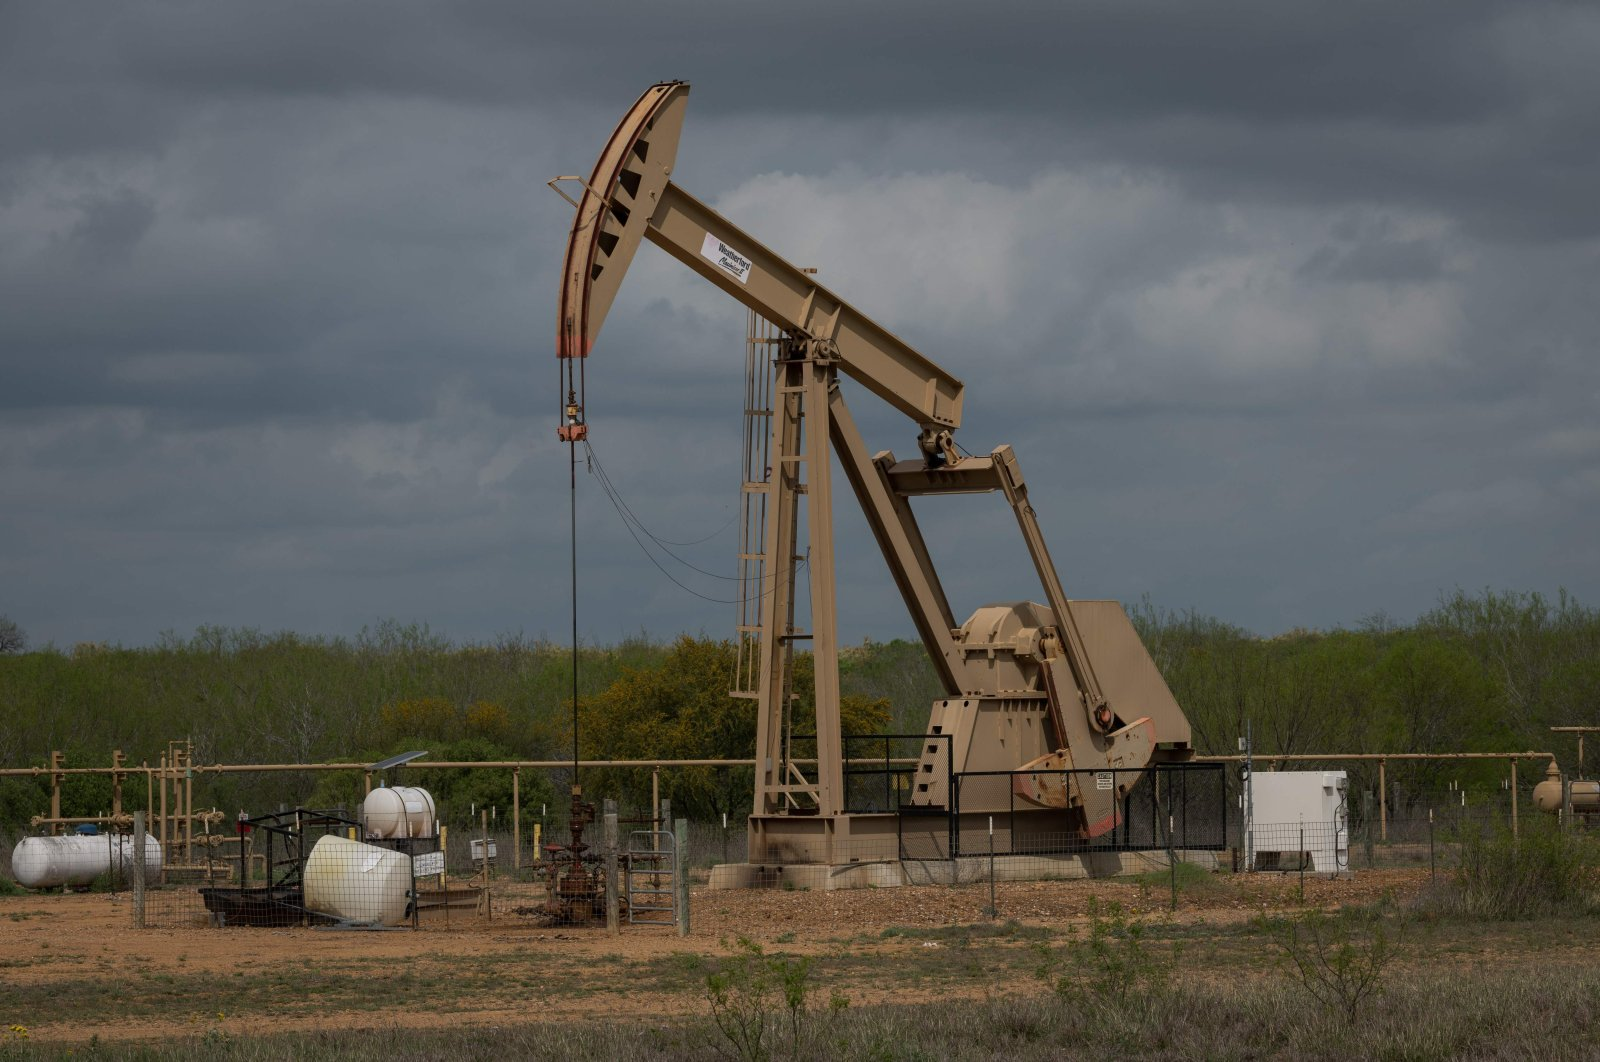 A pump jack operates at an oil extraction site in Cotulla, Texas, U.S., March 12, 2019. (AFP Photo)